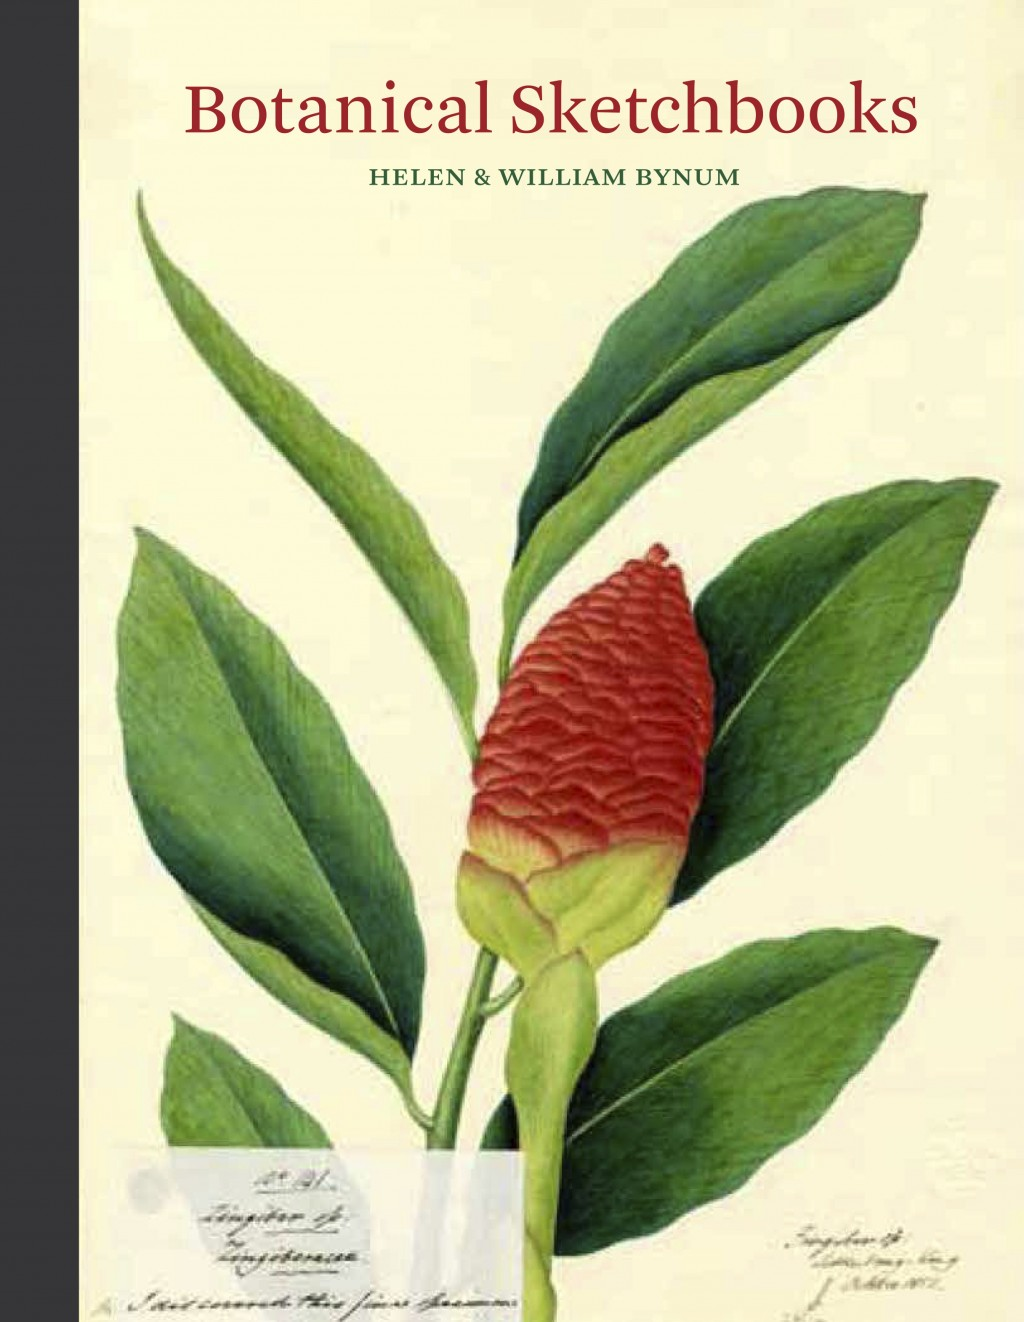 """This photo provided by Princeton Architectural Press shows the cover of the book """"Botanical Sketchbooks"""" by Helen & William Bynum. Highly detailed bot..."""